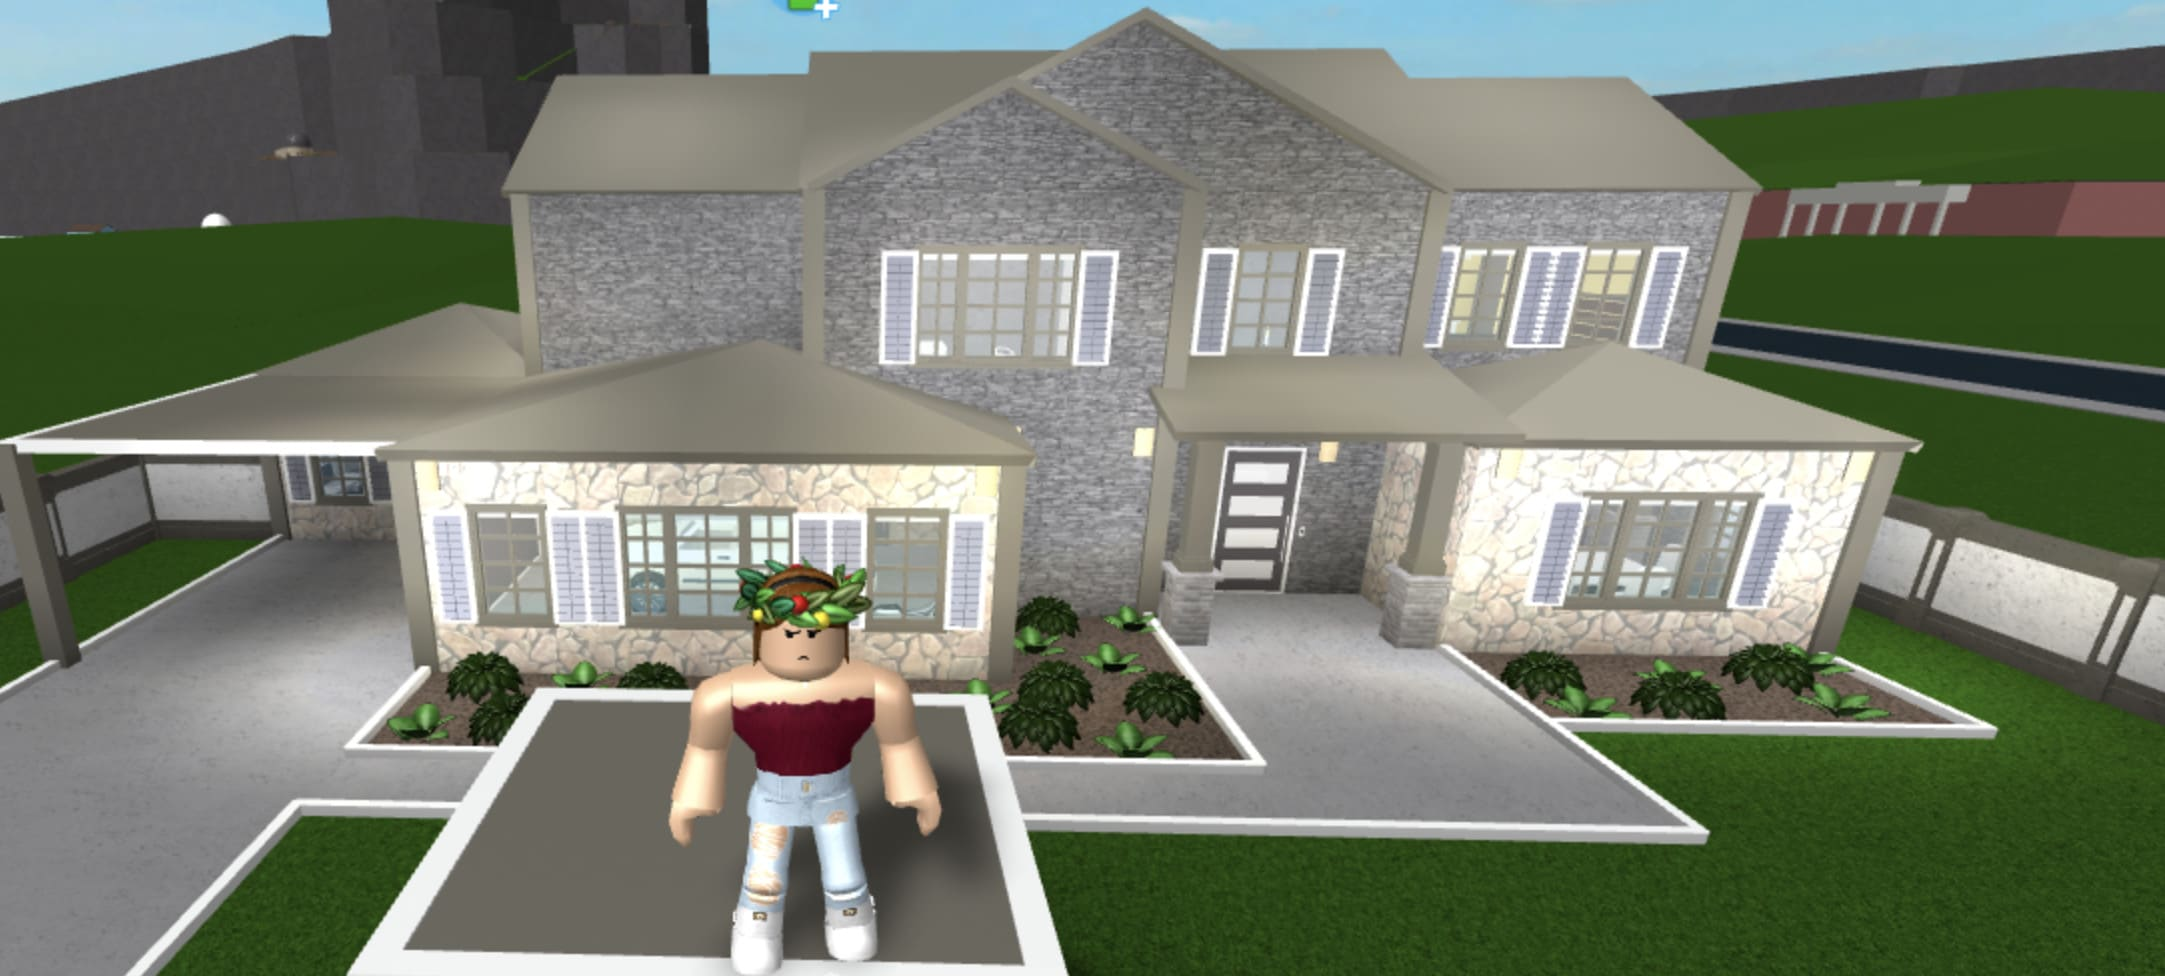 Roblox Bloxburg How To Build A Small House Build You Anything In Roblox Bloxburg By Maddiexspat